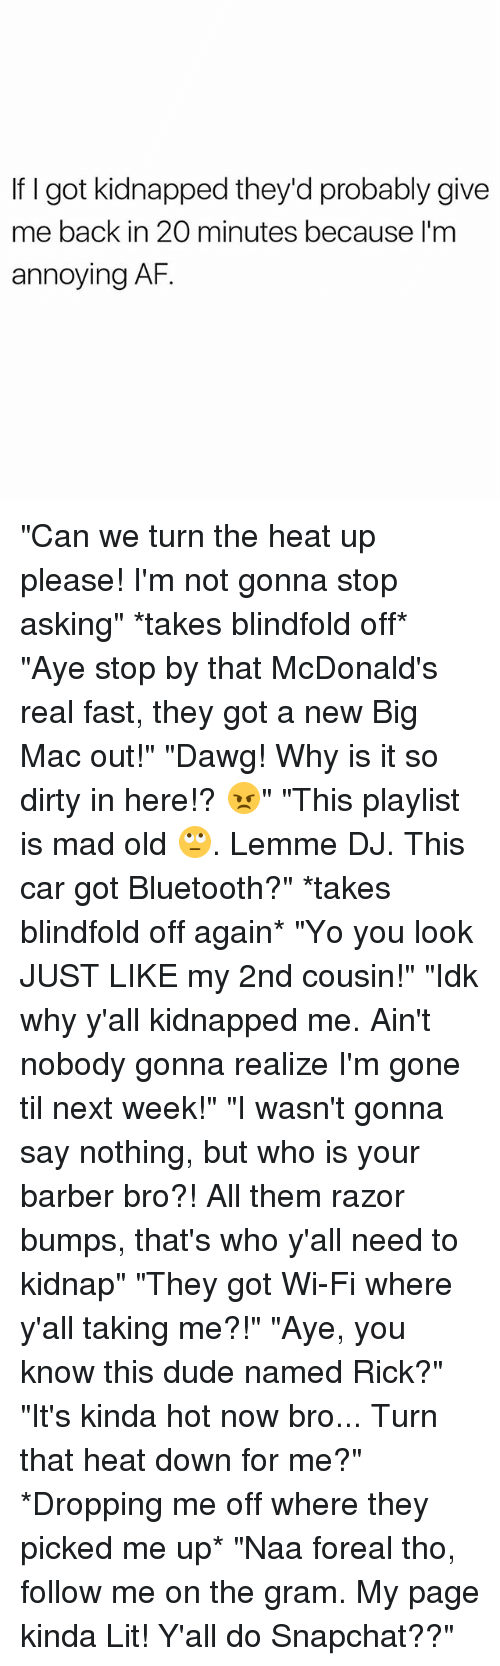 "Kidnapped Me: If I got kidnapped they'd probably give  me back in 20 minutes because I'm  annoying AF. ""Can we turn the heat up please! I'm not gonna stop asking"" *takes blindfold off* ""Aye stop by that McDonald's real fast, they got a new Big Mac out!"" ""Dawg! Why is it so dirty in here!? 😠"" ""This playlist is mad old 🙄. Lemme DJ. This car got Bluetooth?"" *takes blindfold off again* ""Yo you look JUST LIKE my 2nd cousin!"" ""Idk why y'all kidnapped me. Ain't nobody gonna realize I'm gone til next week!"" ""I wasn't gonna say nothing, but who is your barber bro?! All them razor bumps, that's who y'all need to kidnap"" ""They got Wi-Fi where y'all taking me?!"" ""Aye, you know this dude named Rick?"" ""It's kinda hot now bro... Turn that heat down for me?"" *Dropping me off where they picked me up* ""Naa foreal tho, follow me on the gram. My page kinda Lit! Y'all do Snapchat??"""